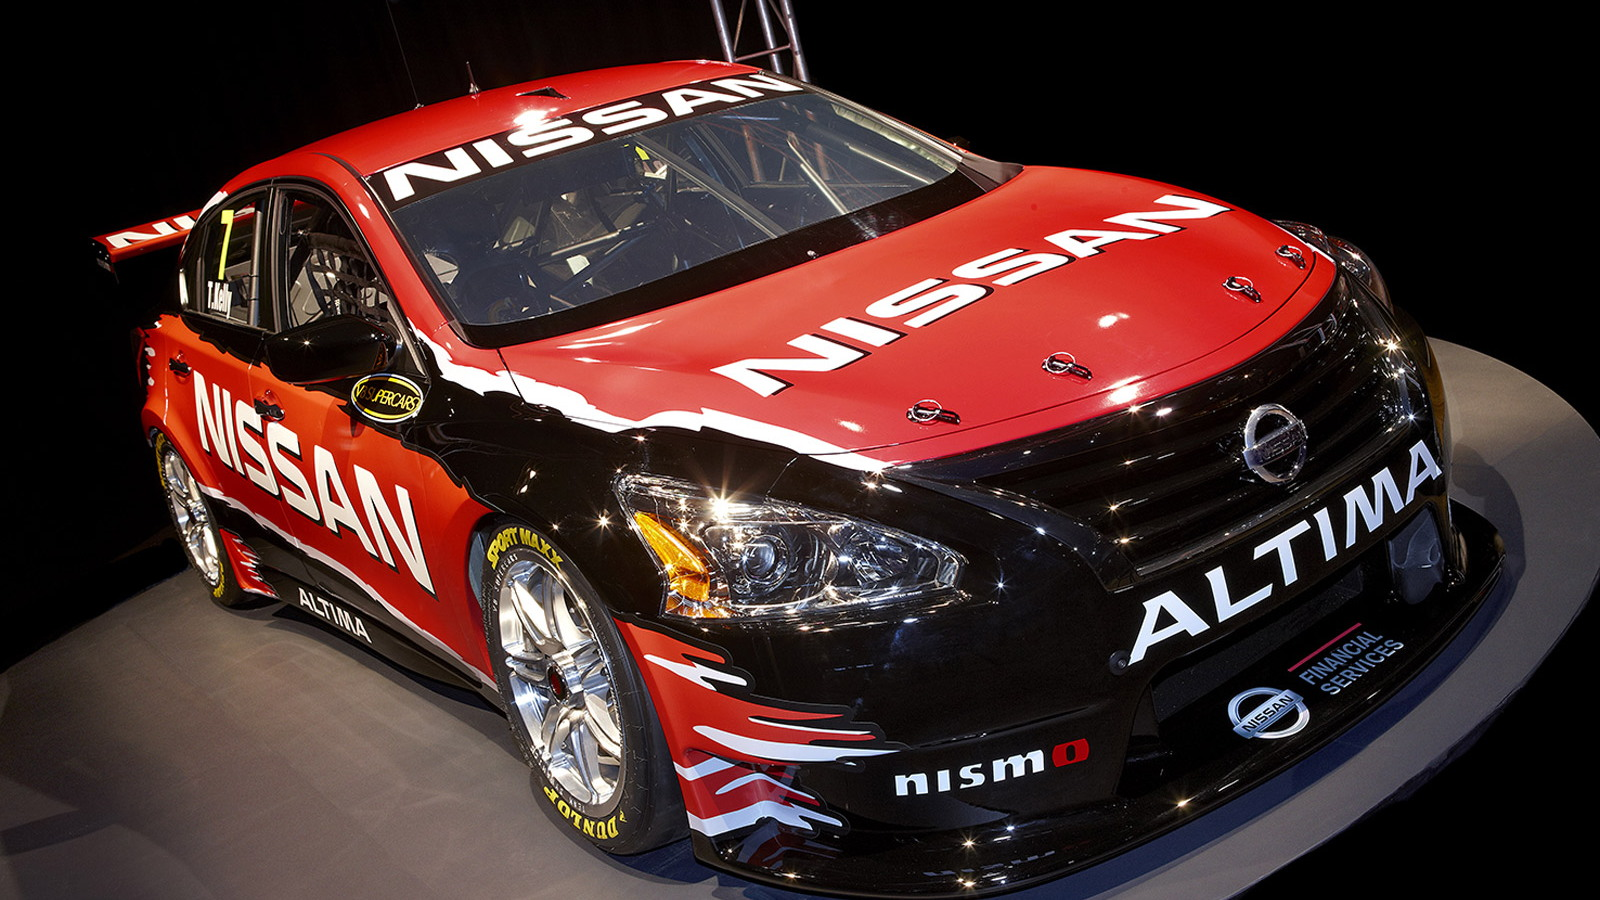 2013 Nissan Altima V8 Supercars race car